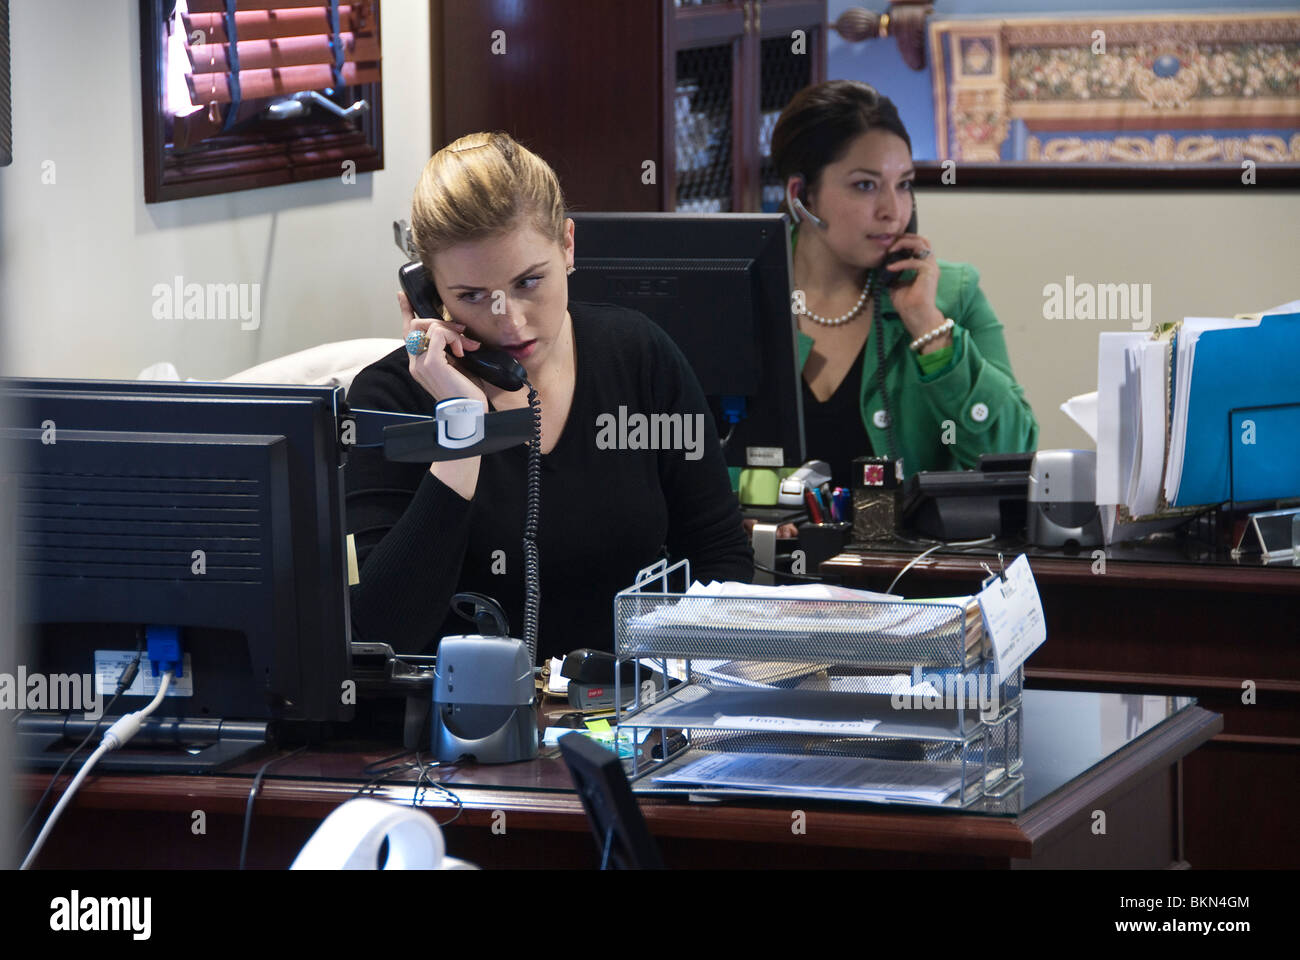 Two 25 - 30 year old woman business assistant women at desk. - Stock Image